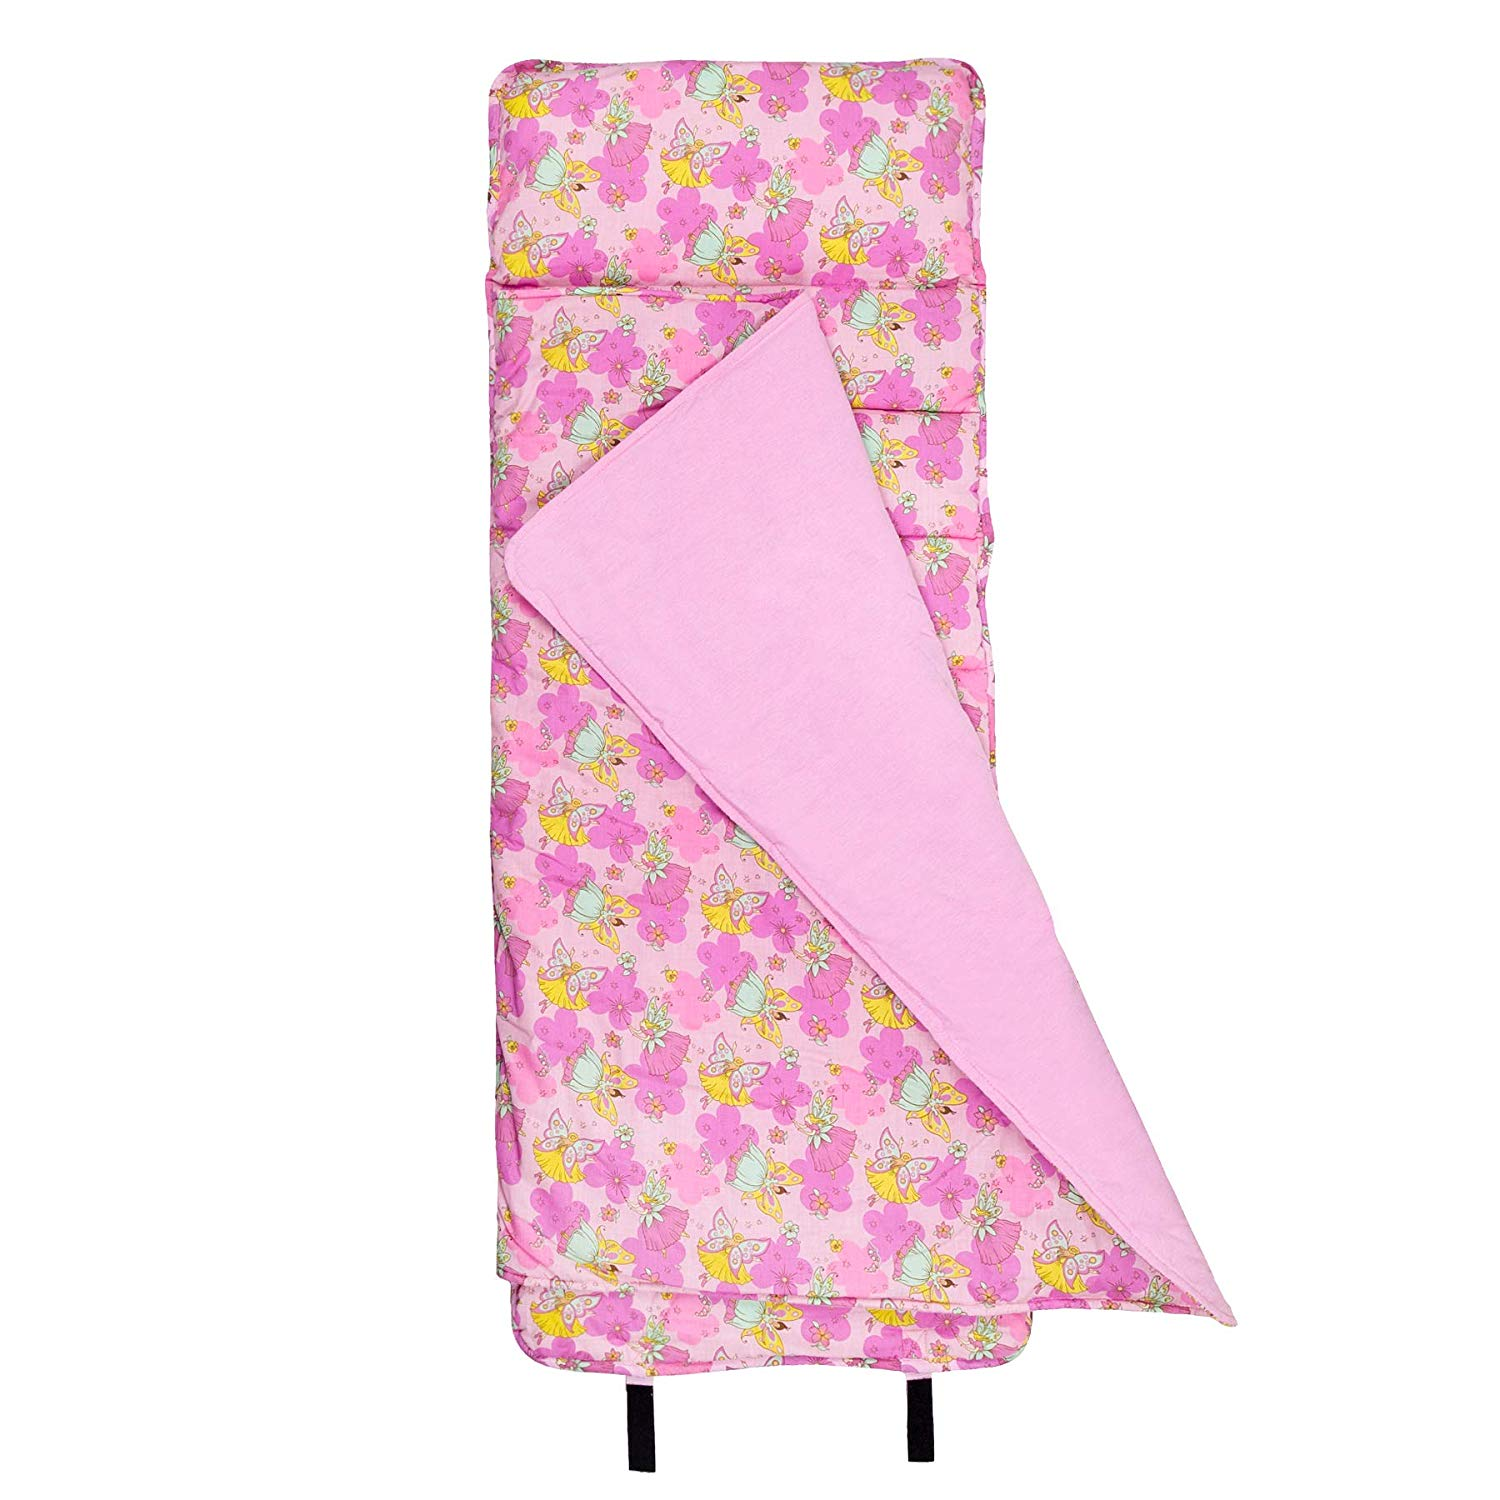 An image of Wildkin 28023 Kids Cotton Flannel Sleeping Bag